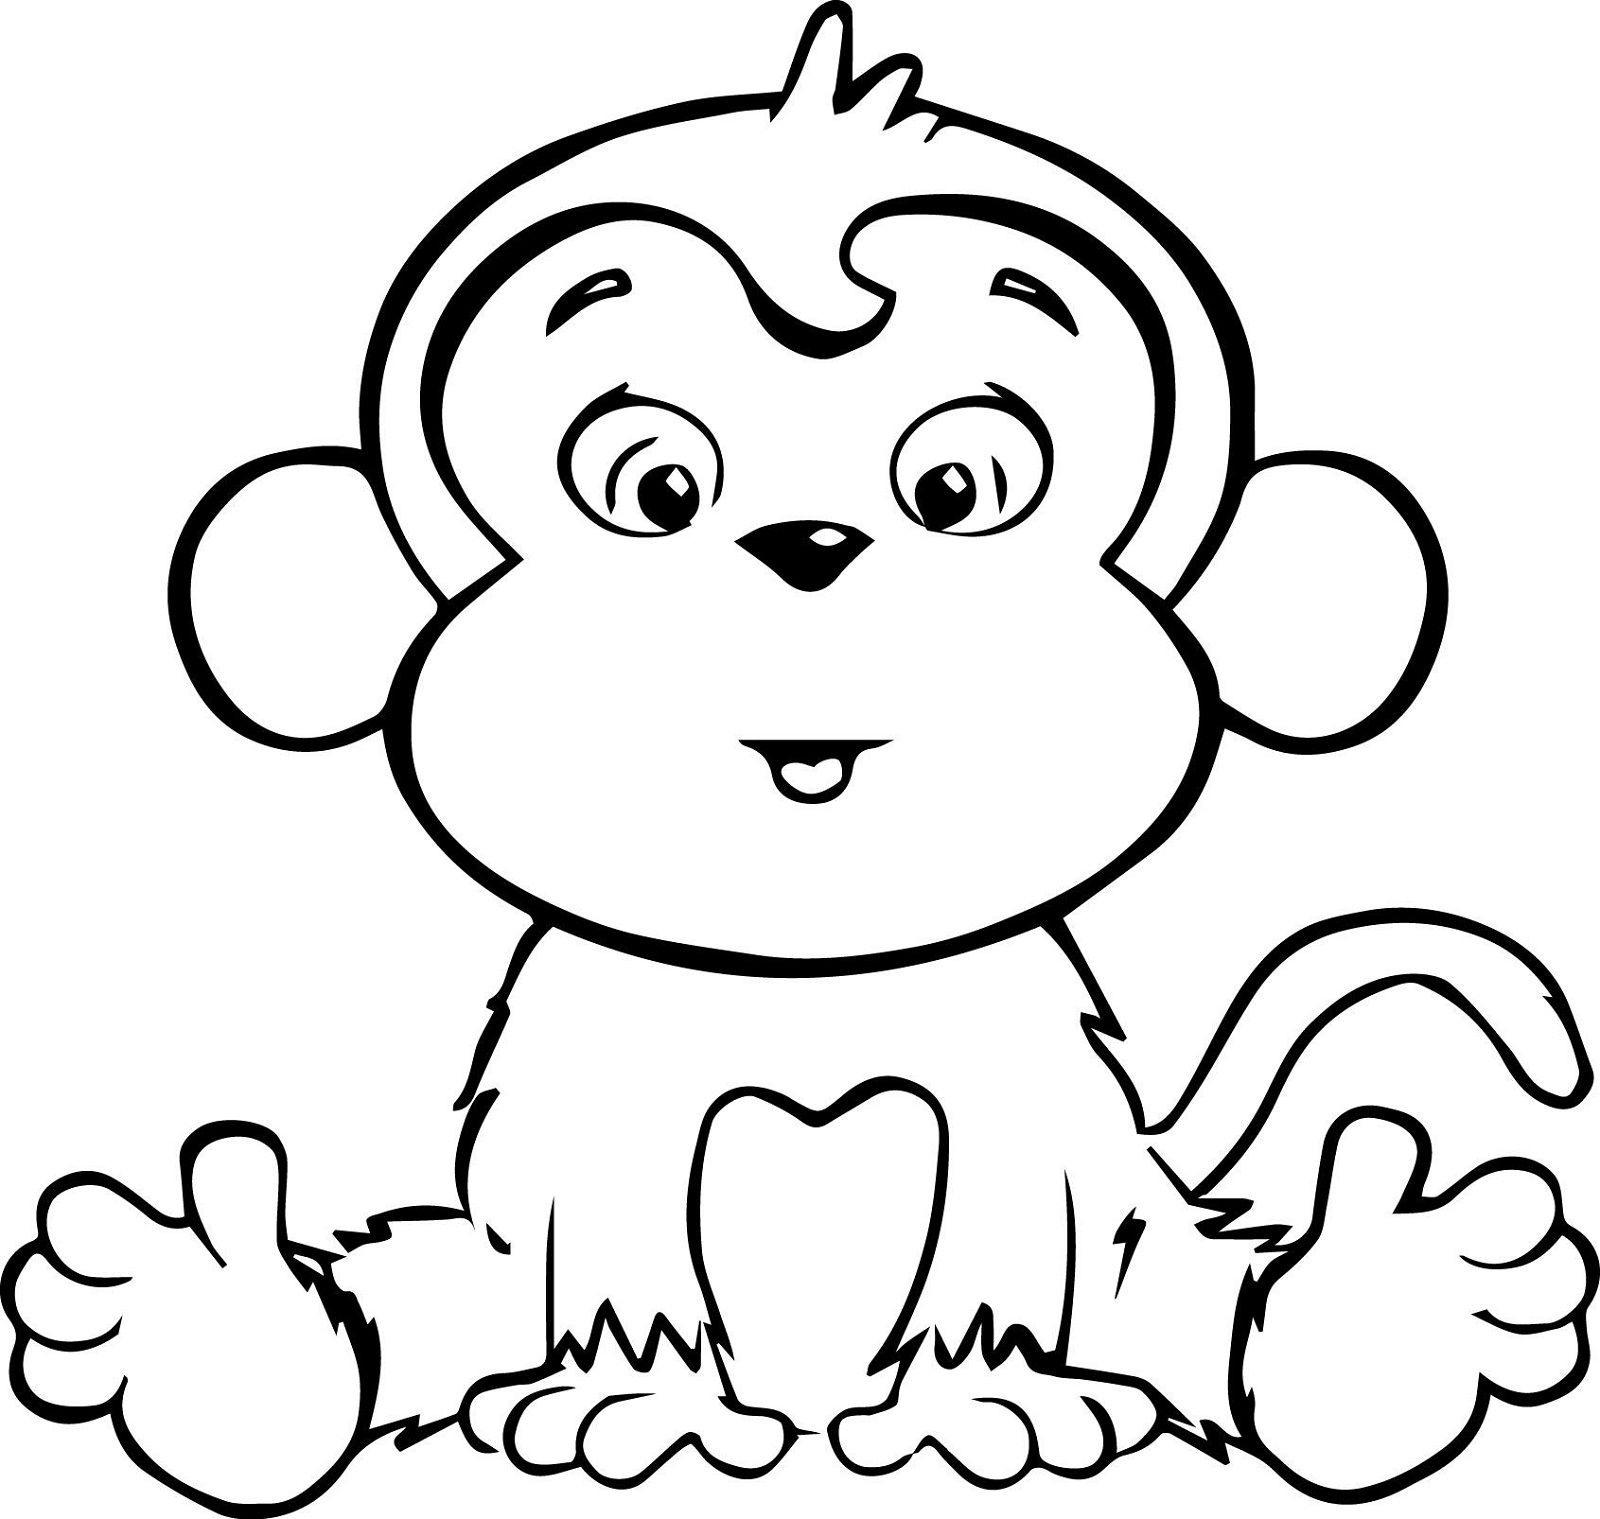 Monkeys Coloring Pages Worksheets Loving Printable Monkey Coloring Pages Cartoon Coloring Pages Baby Coloring Pages